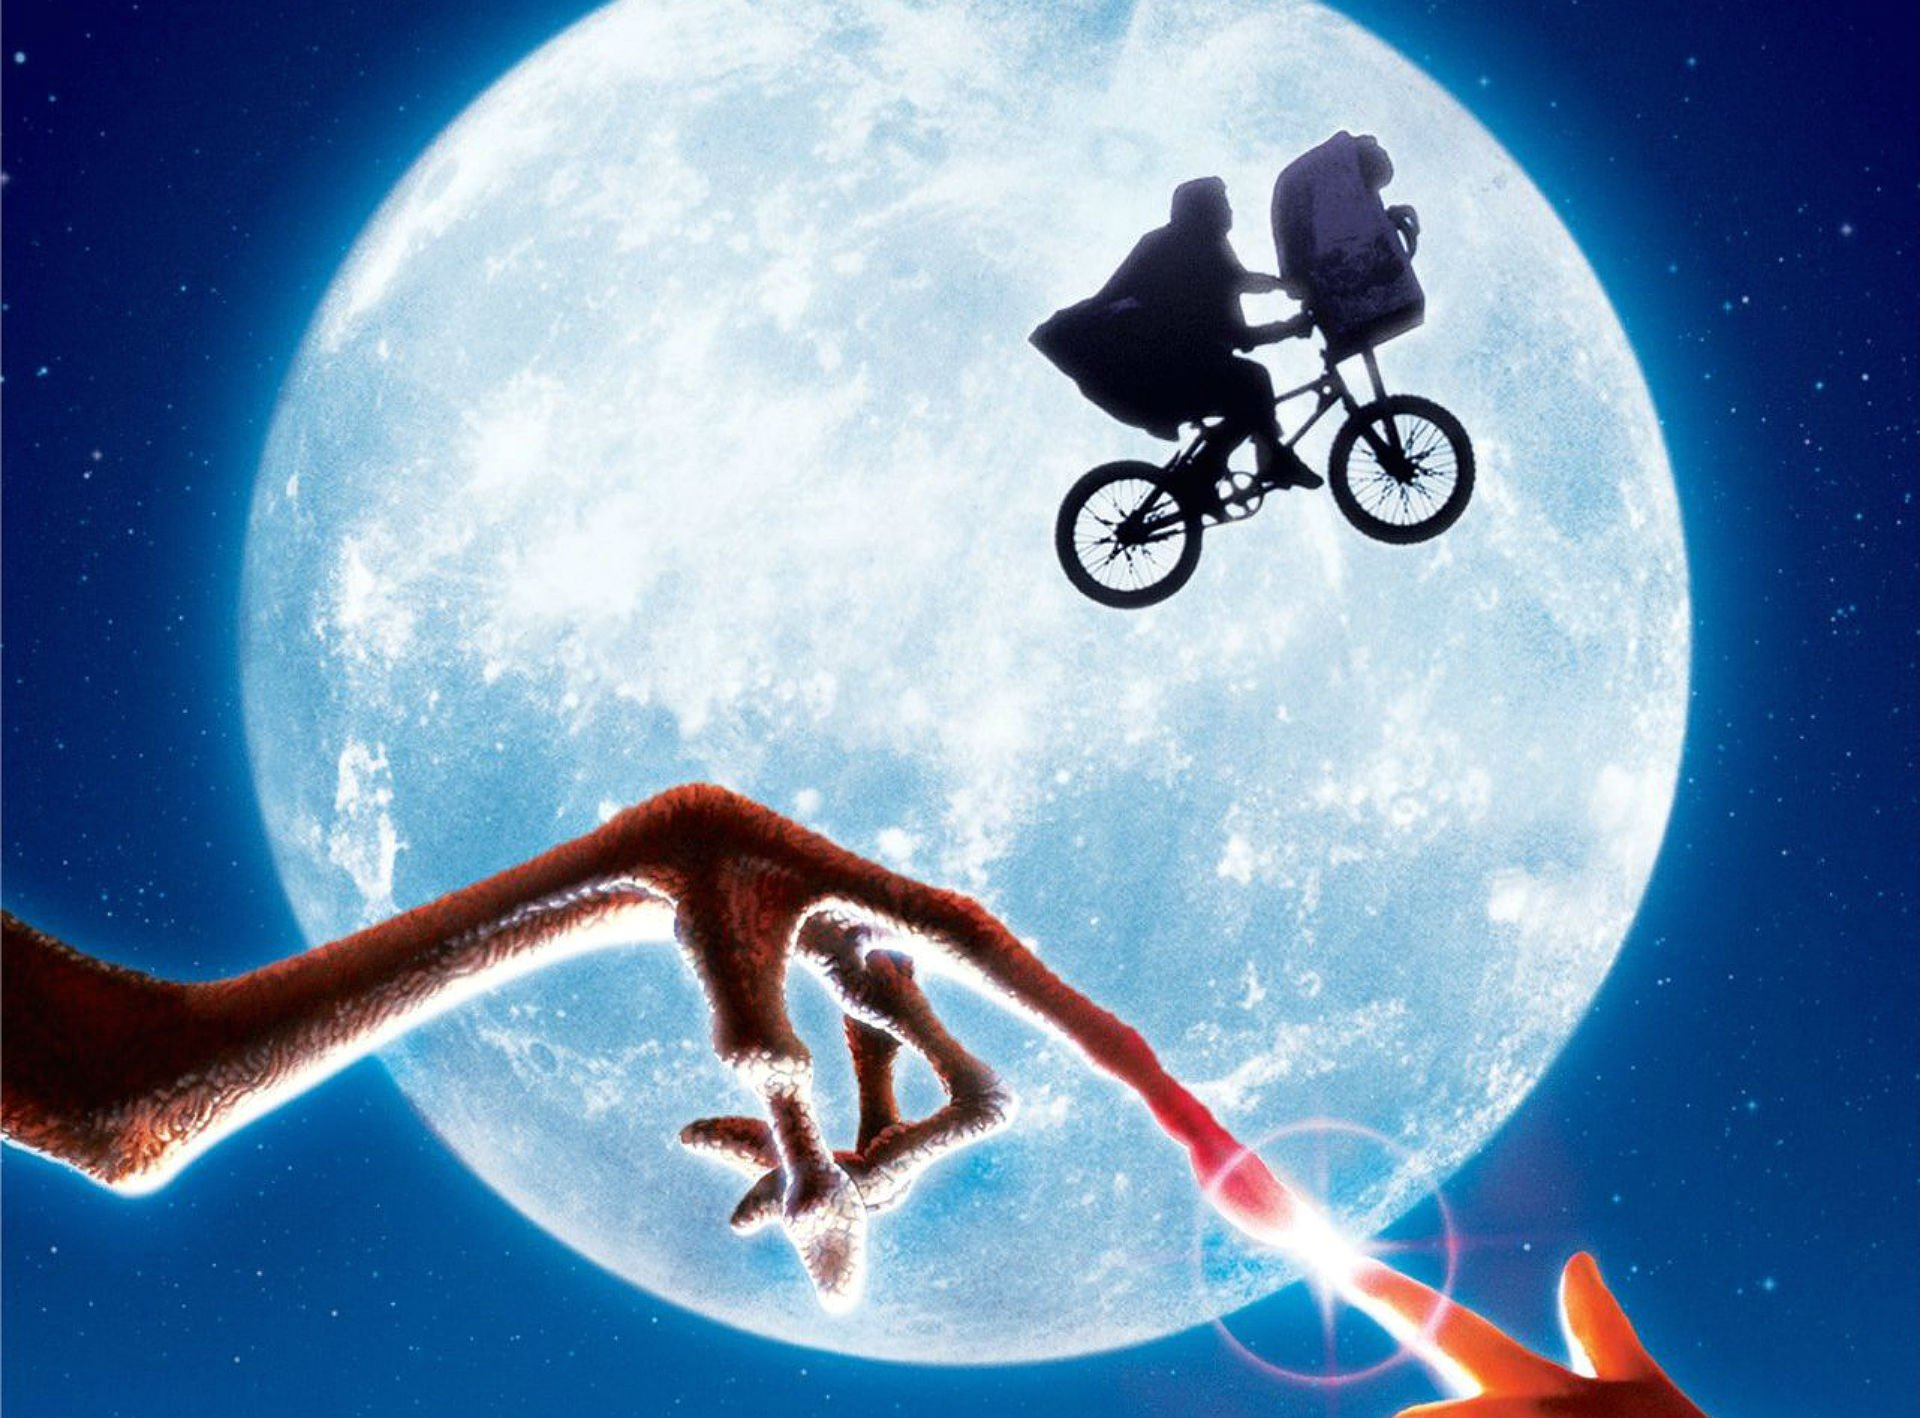 Cute Alien Wallpaper Iphone E T The Extra Terrestrial Adventure Family Science Sci Fi